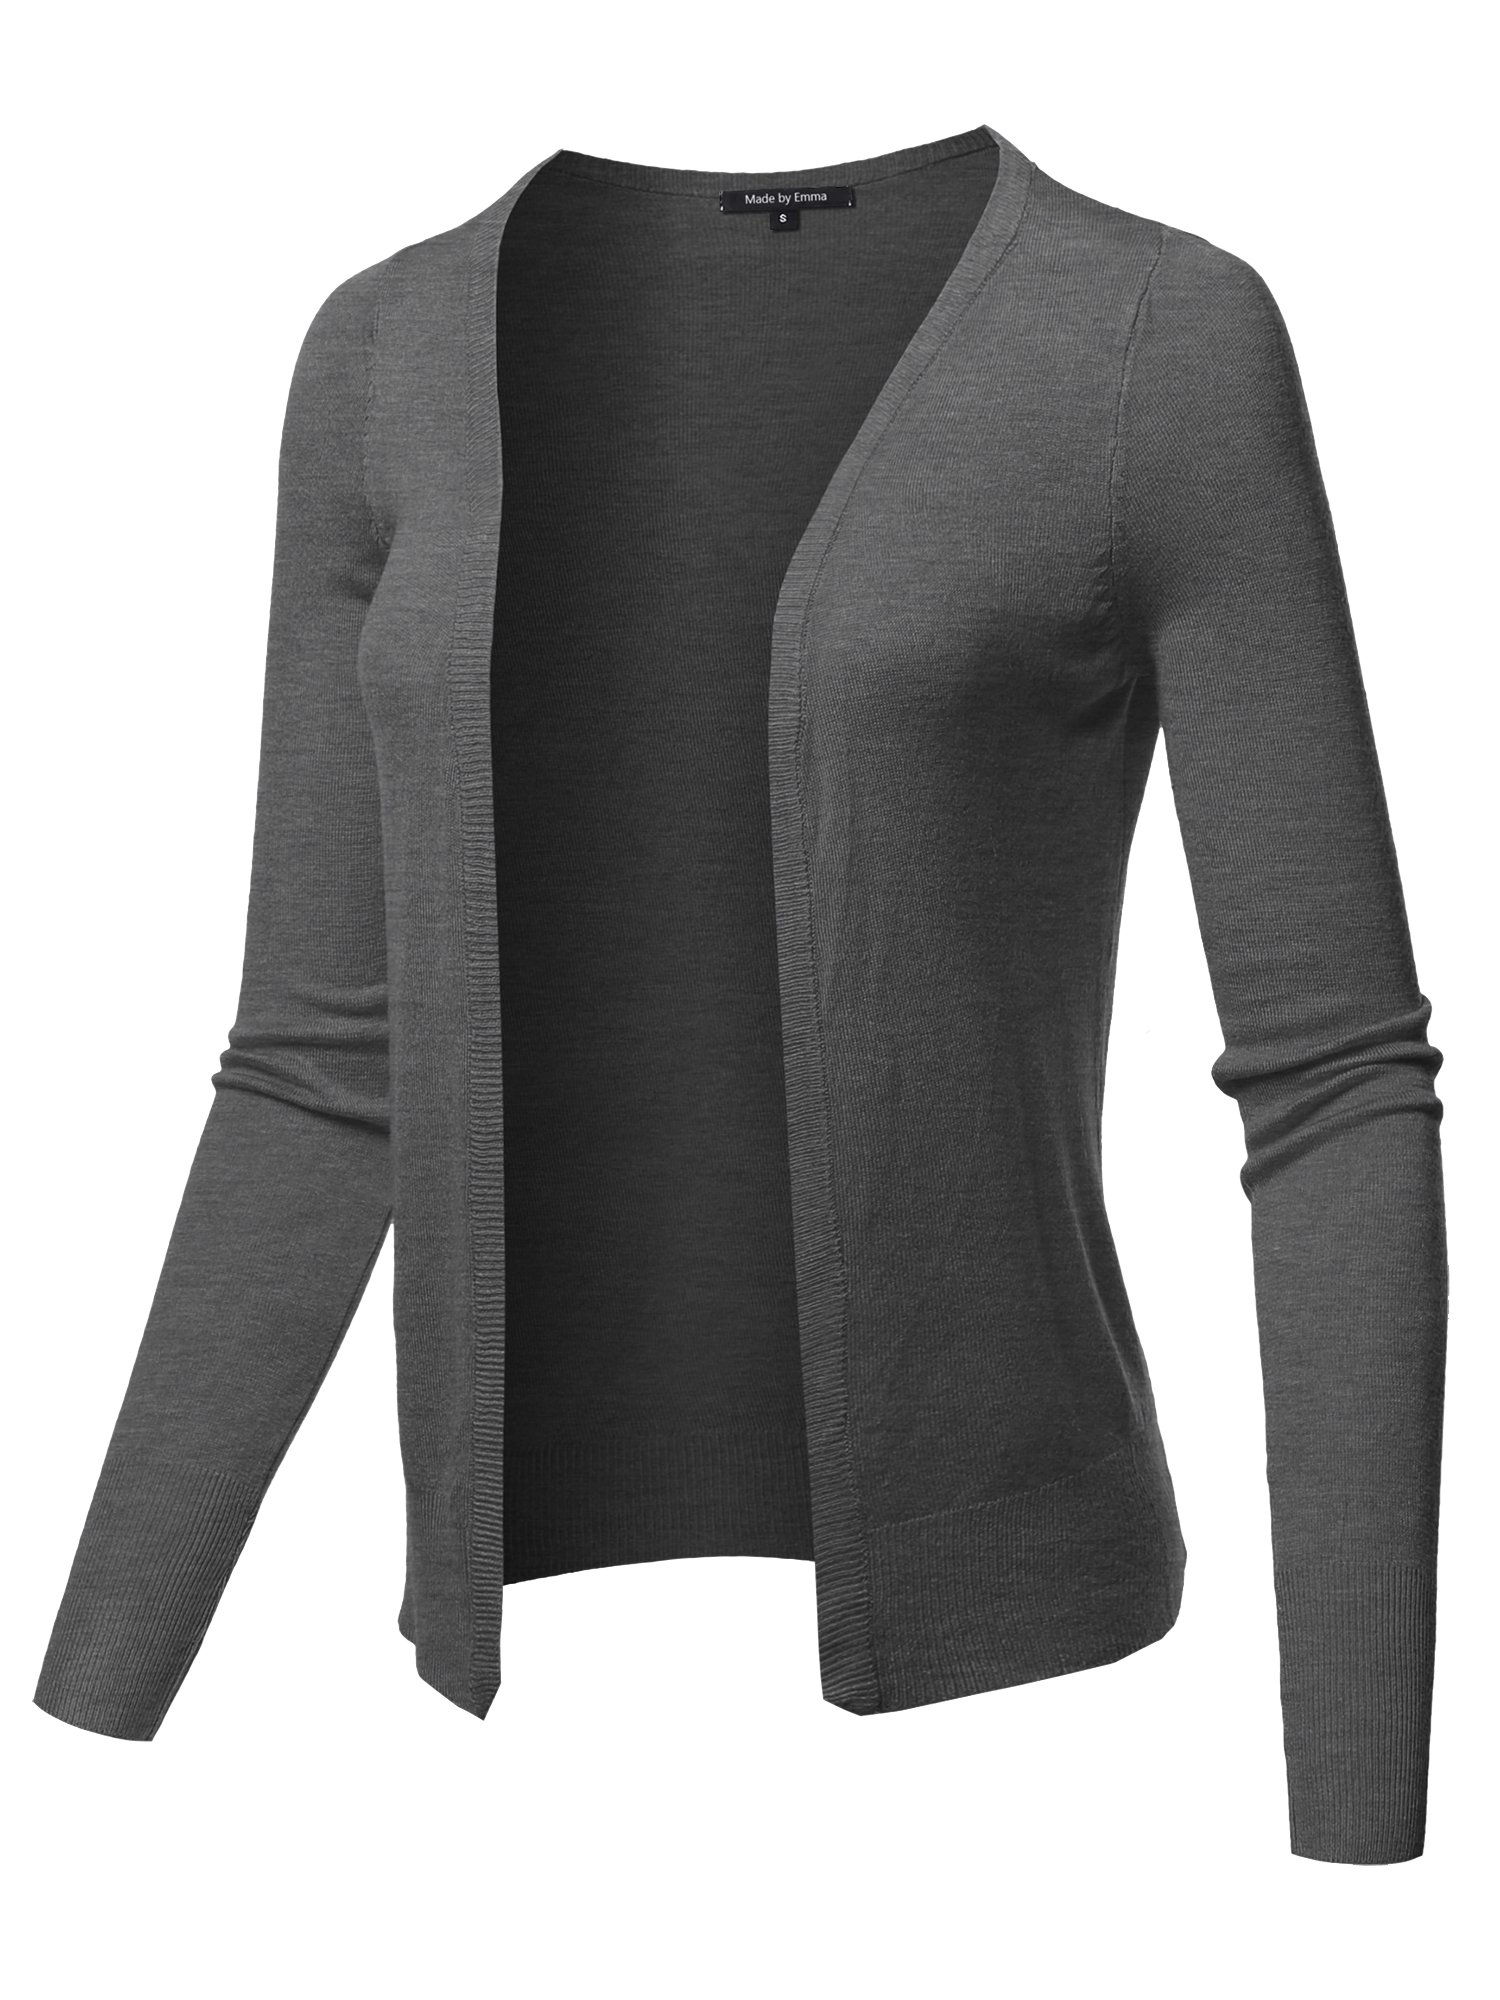 Made by Emma Light Weight Open Front Casual Formal Look Soft Knit Summer Cardigan Charcoal L